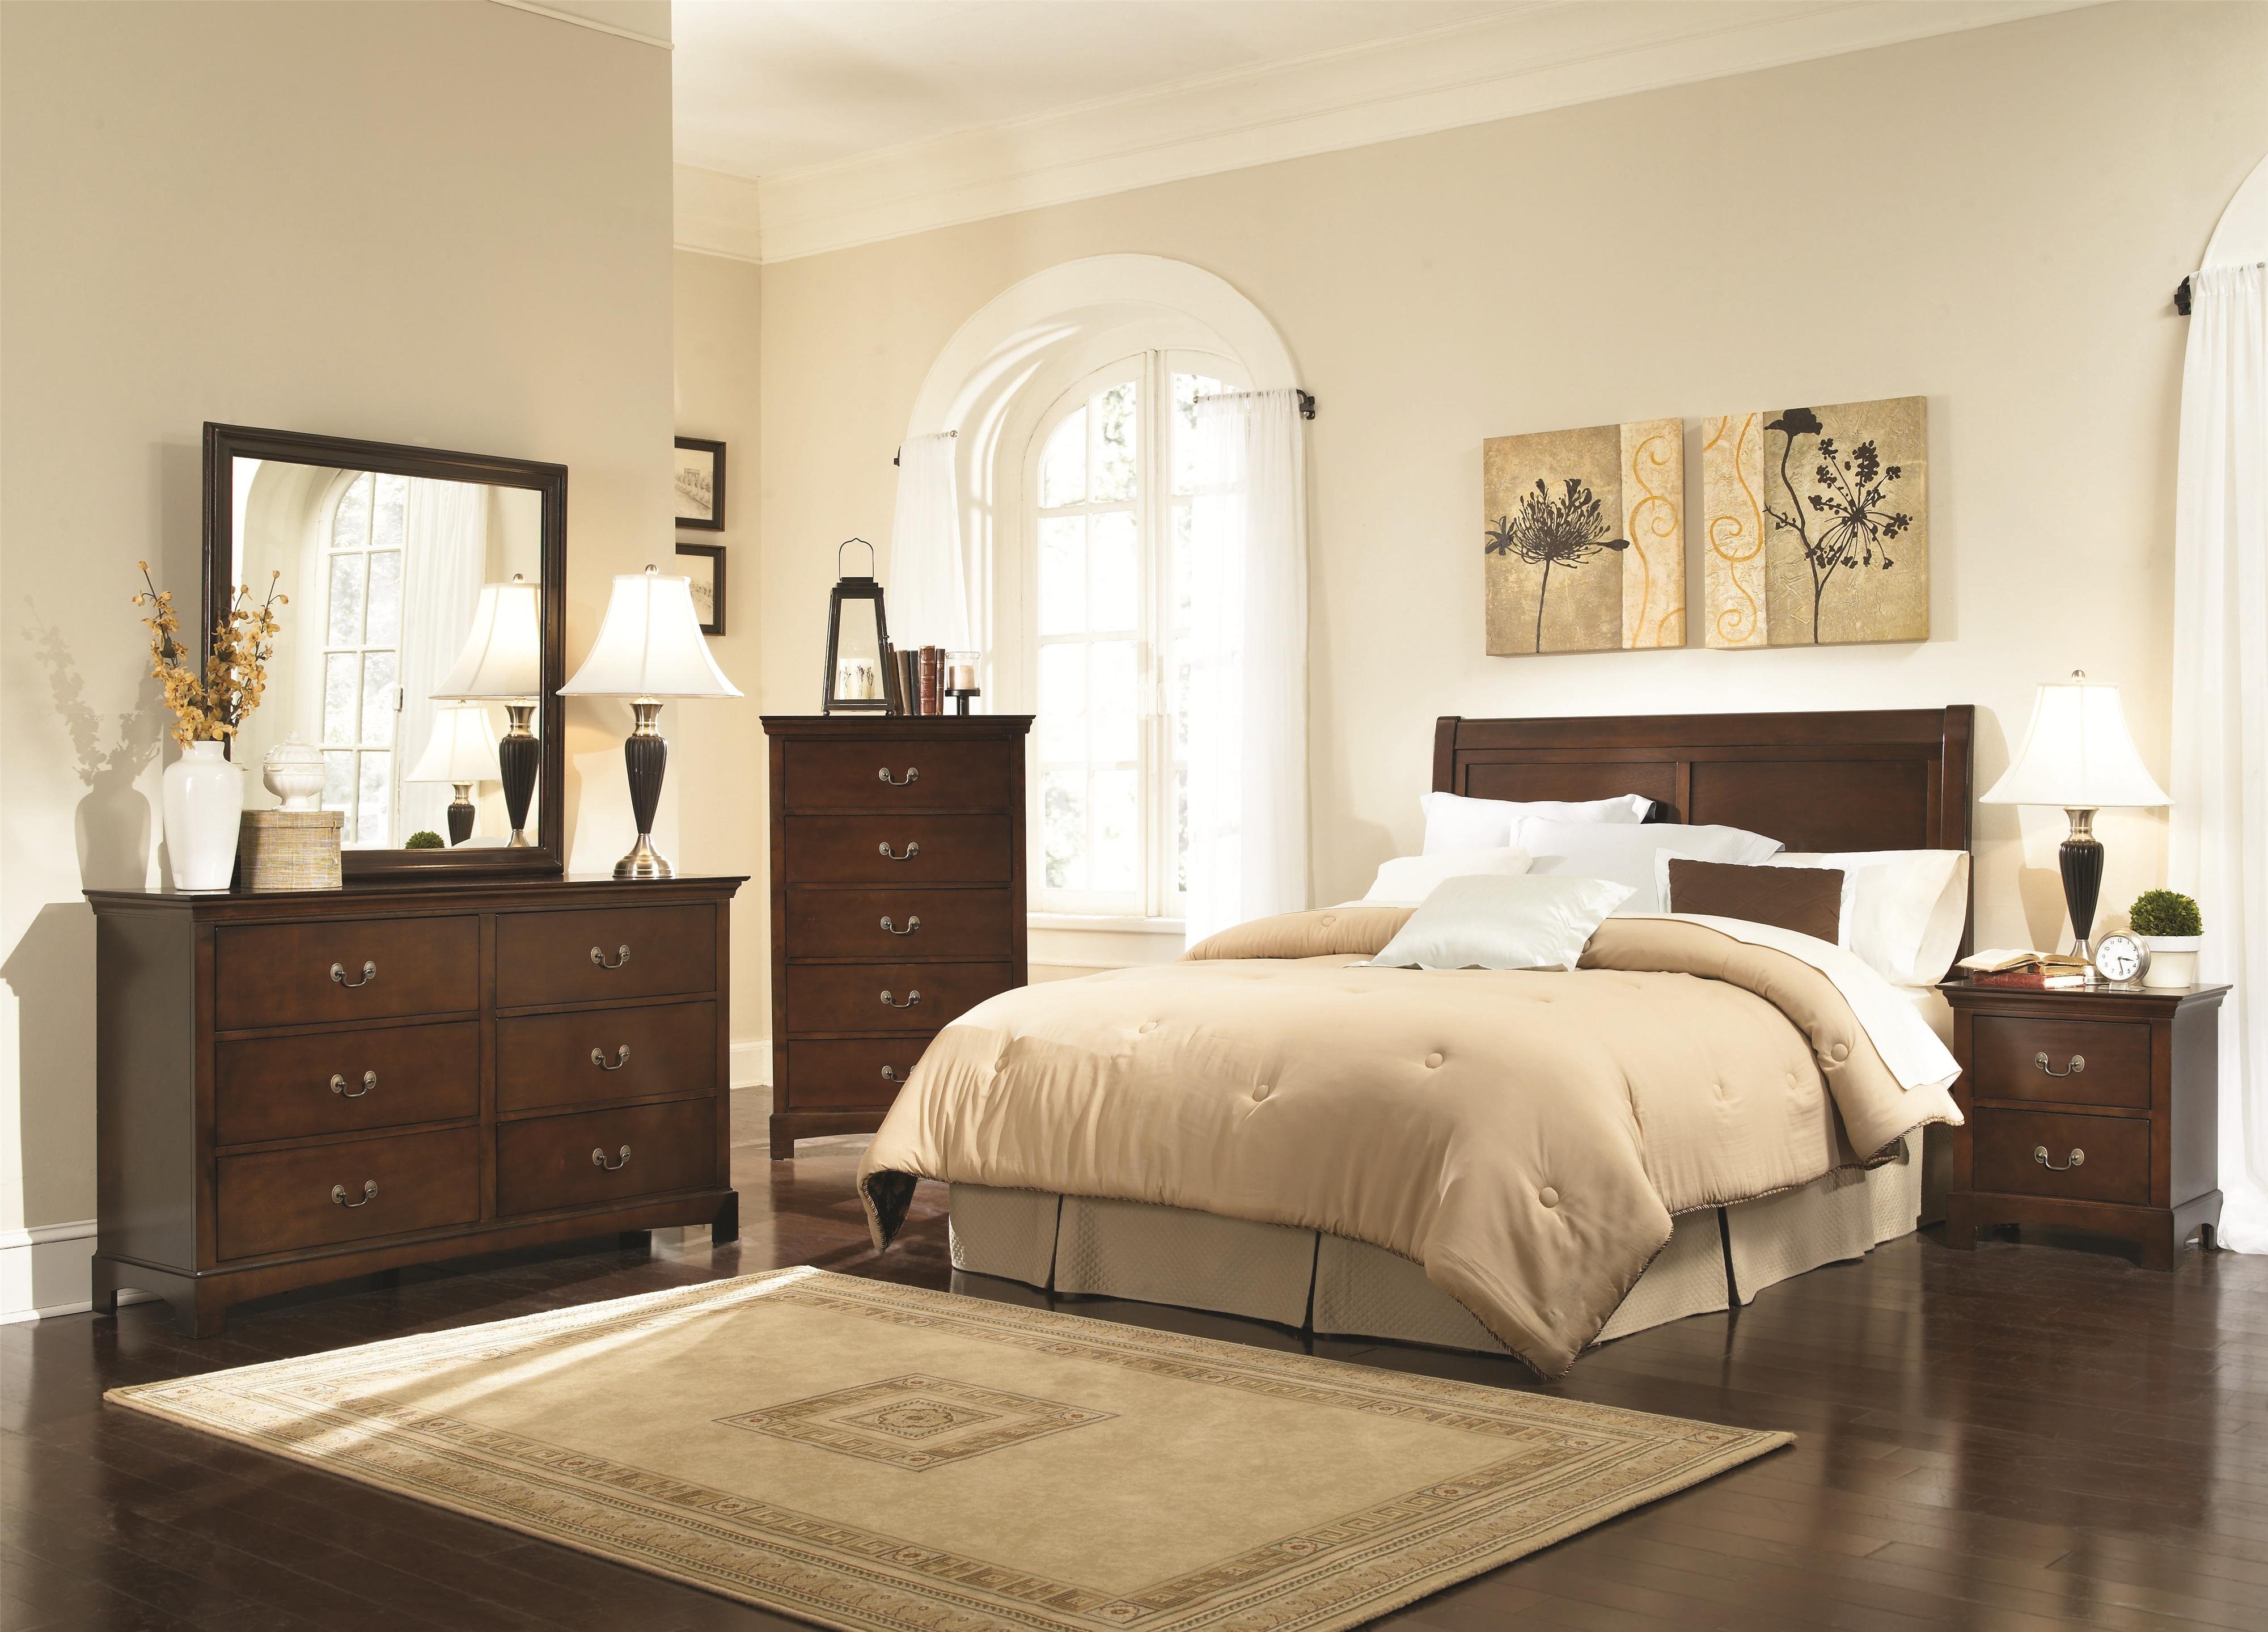 Coaster Tatiana Full Bedroom Group - Item Number: 202390 F Bedroom Group 1